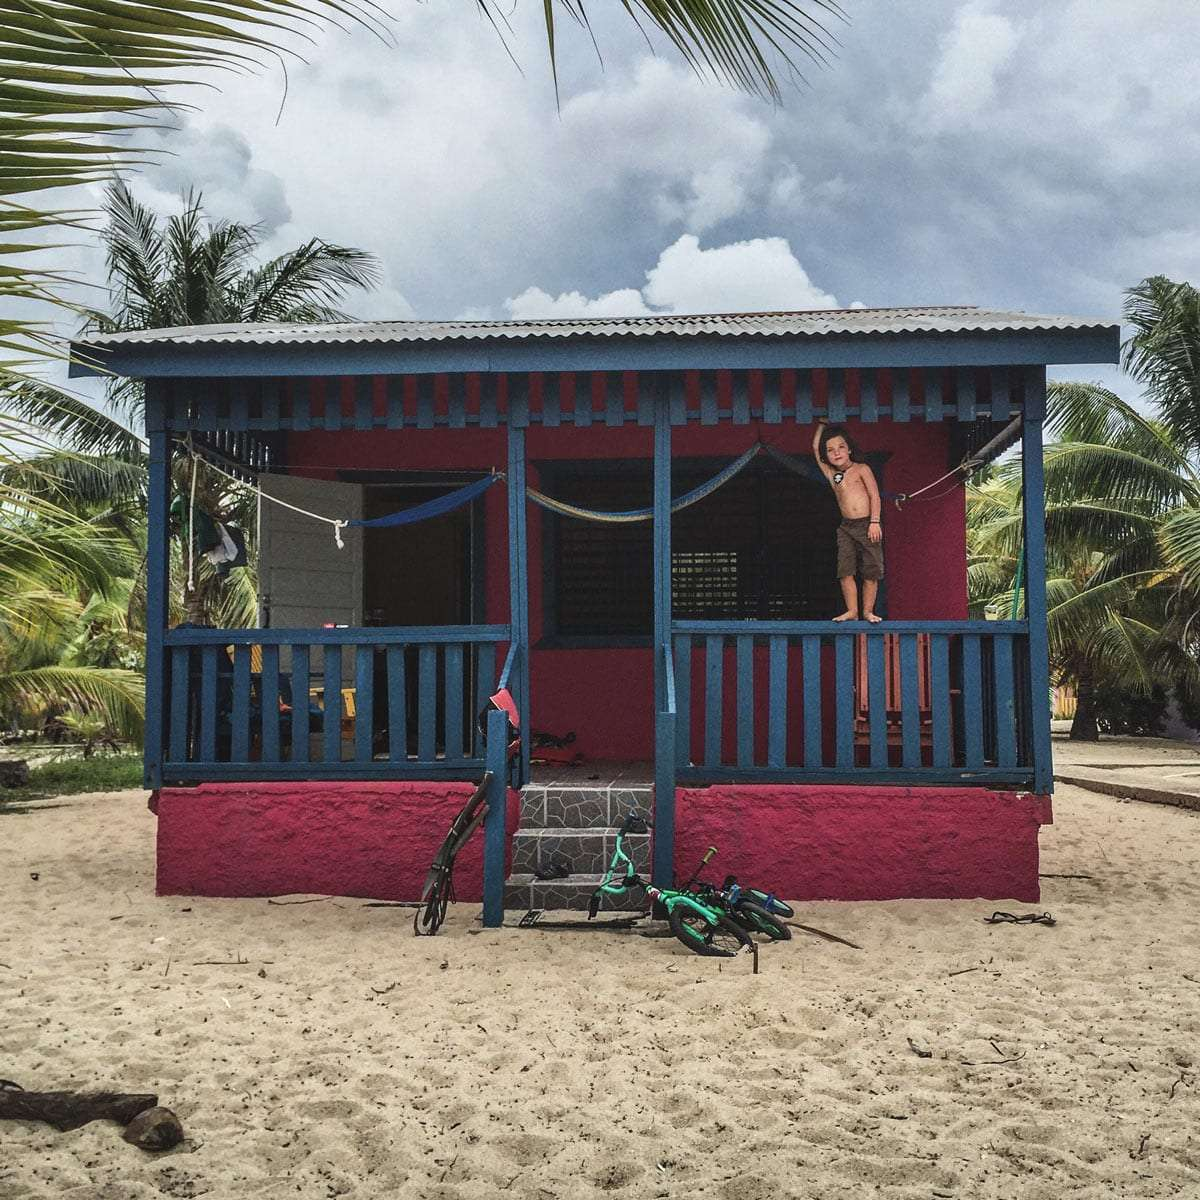 a young boy stands on the railing of a cabana in placencia, belize